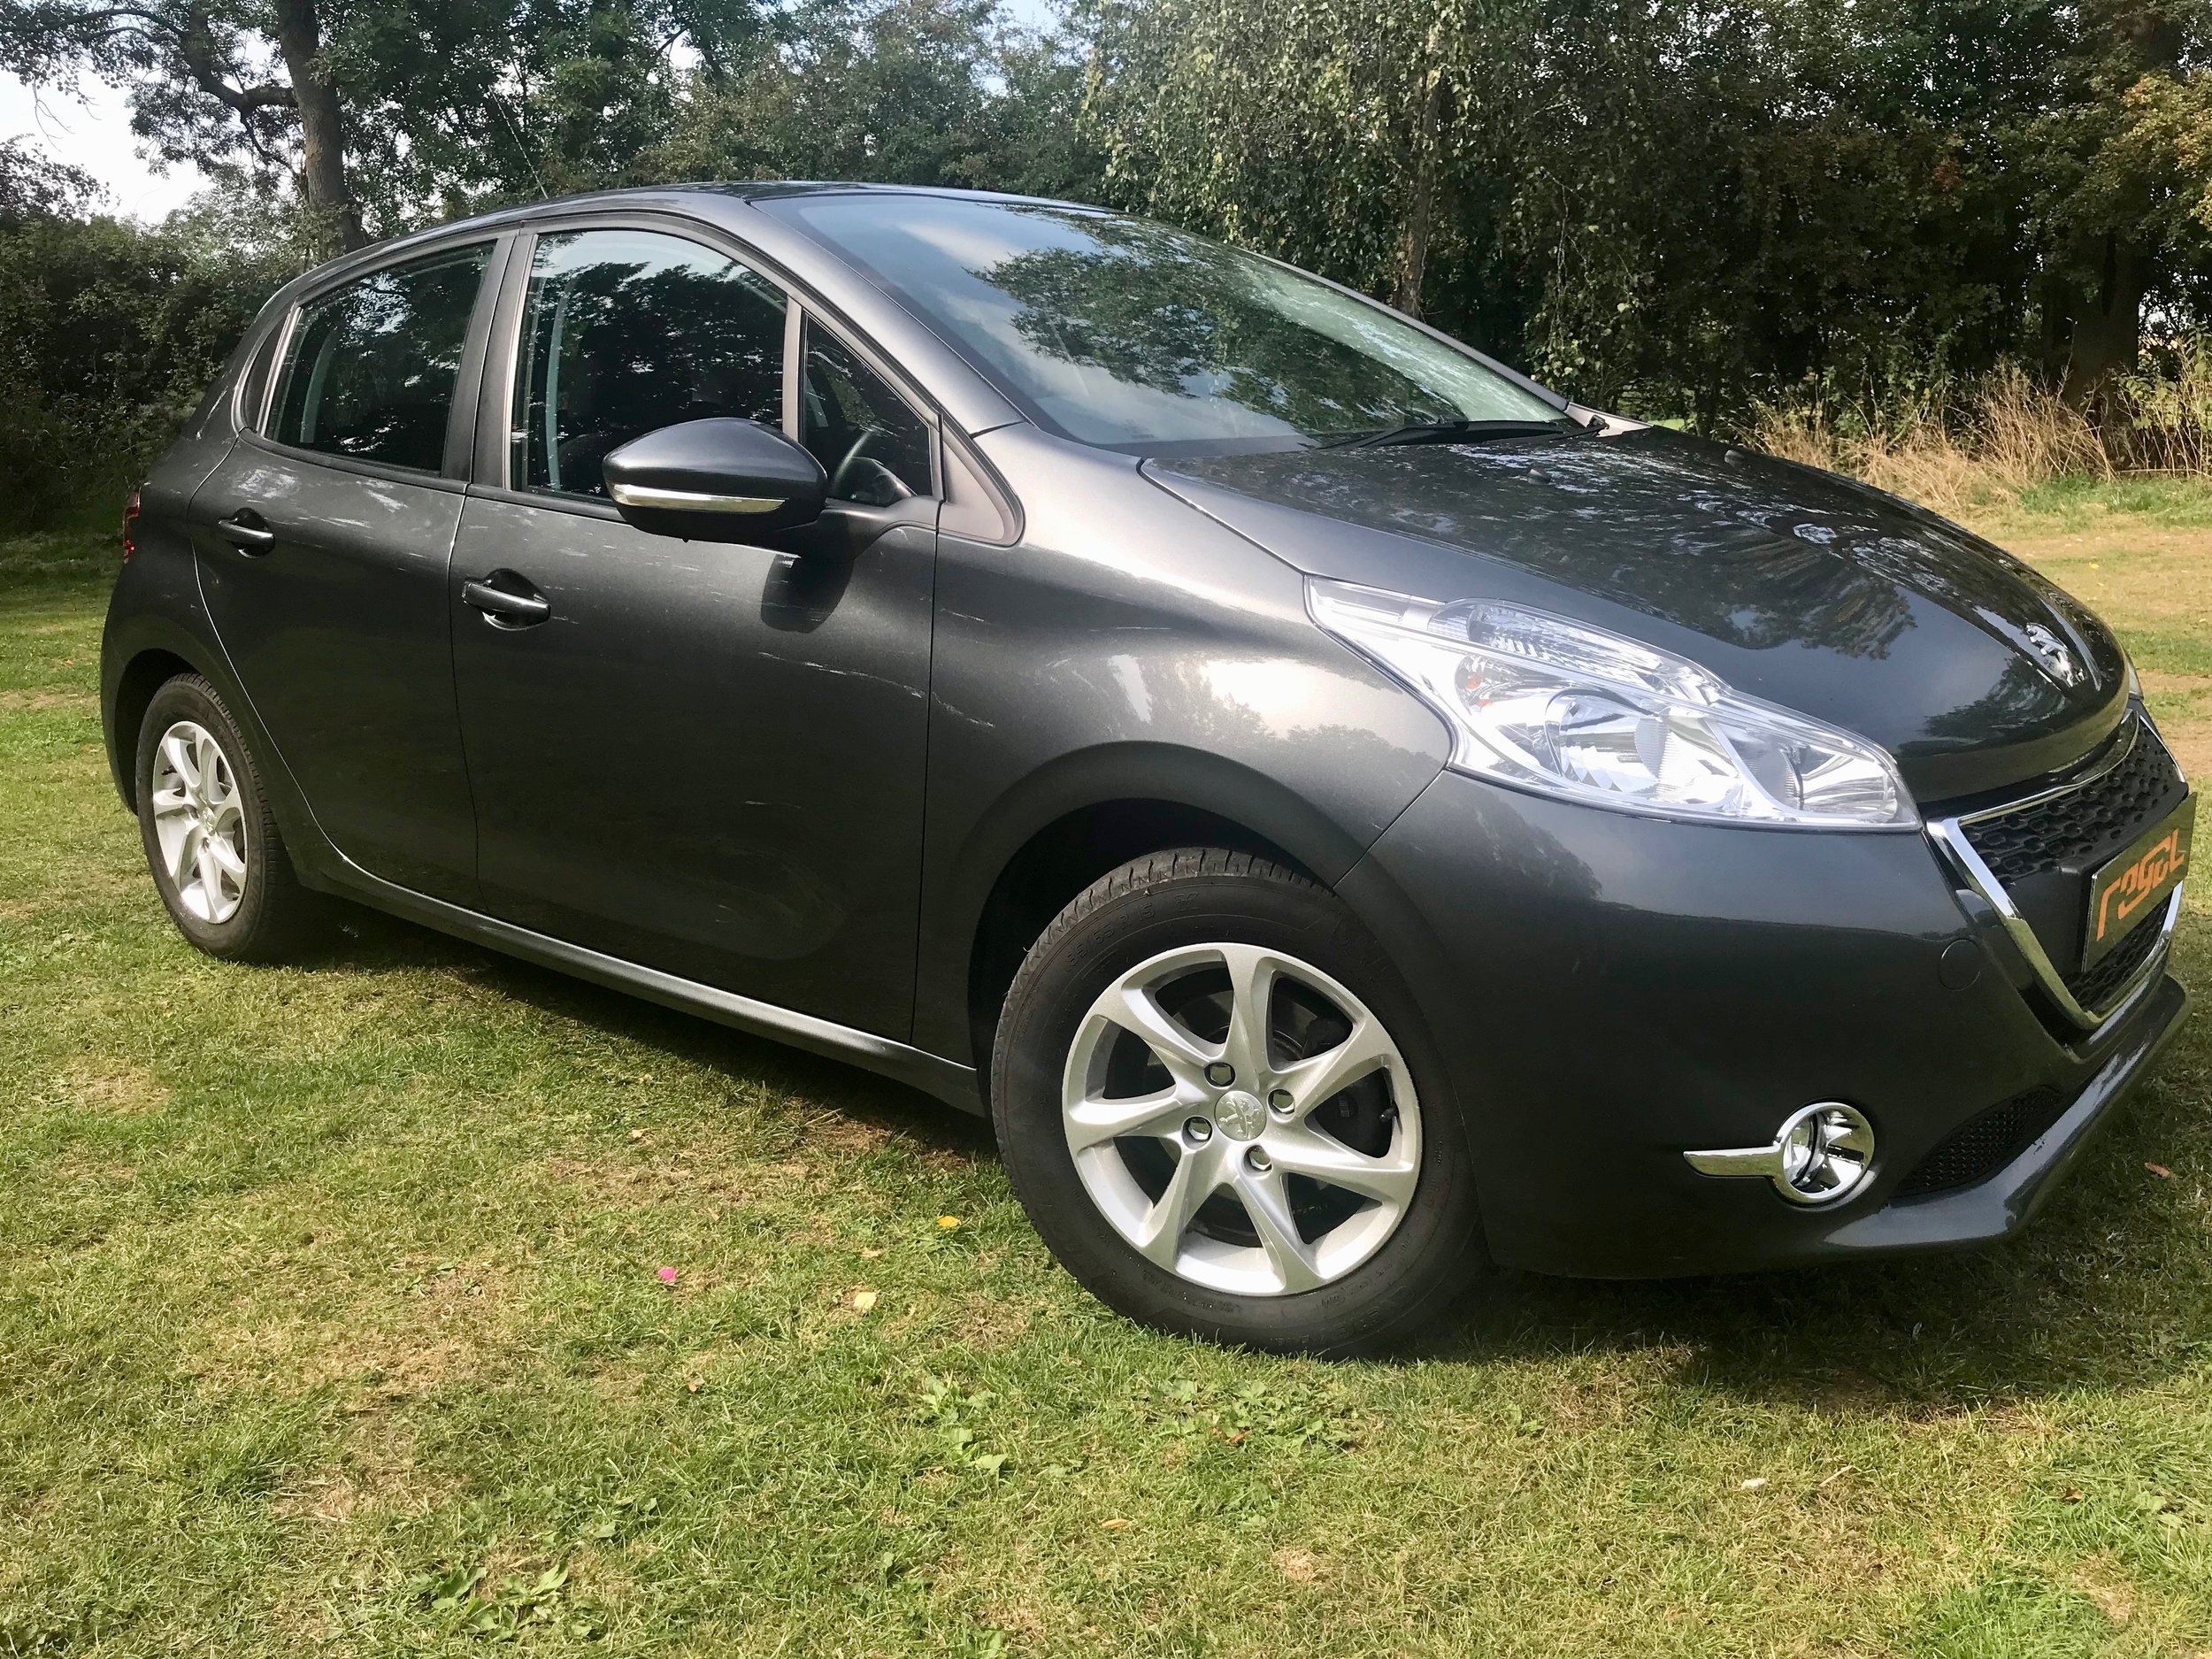 peugeot-208-vti-active-forsale-regalmotion-regalpreowned-usedcar-redditch-bromsgrove-worcestershire-6479-5.jpeg